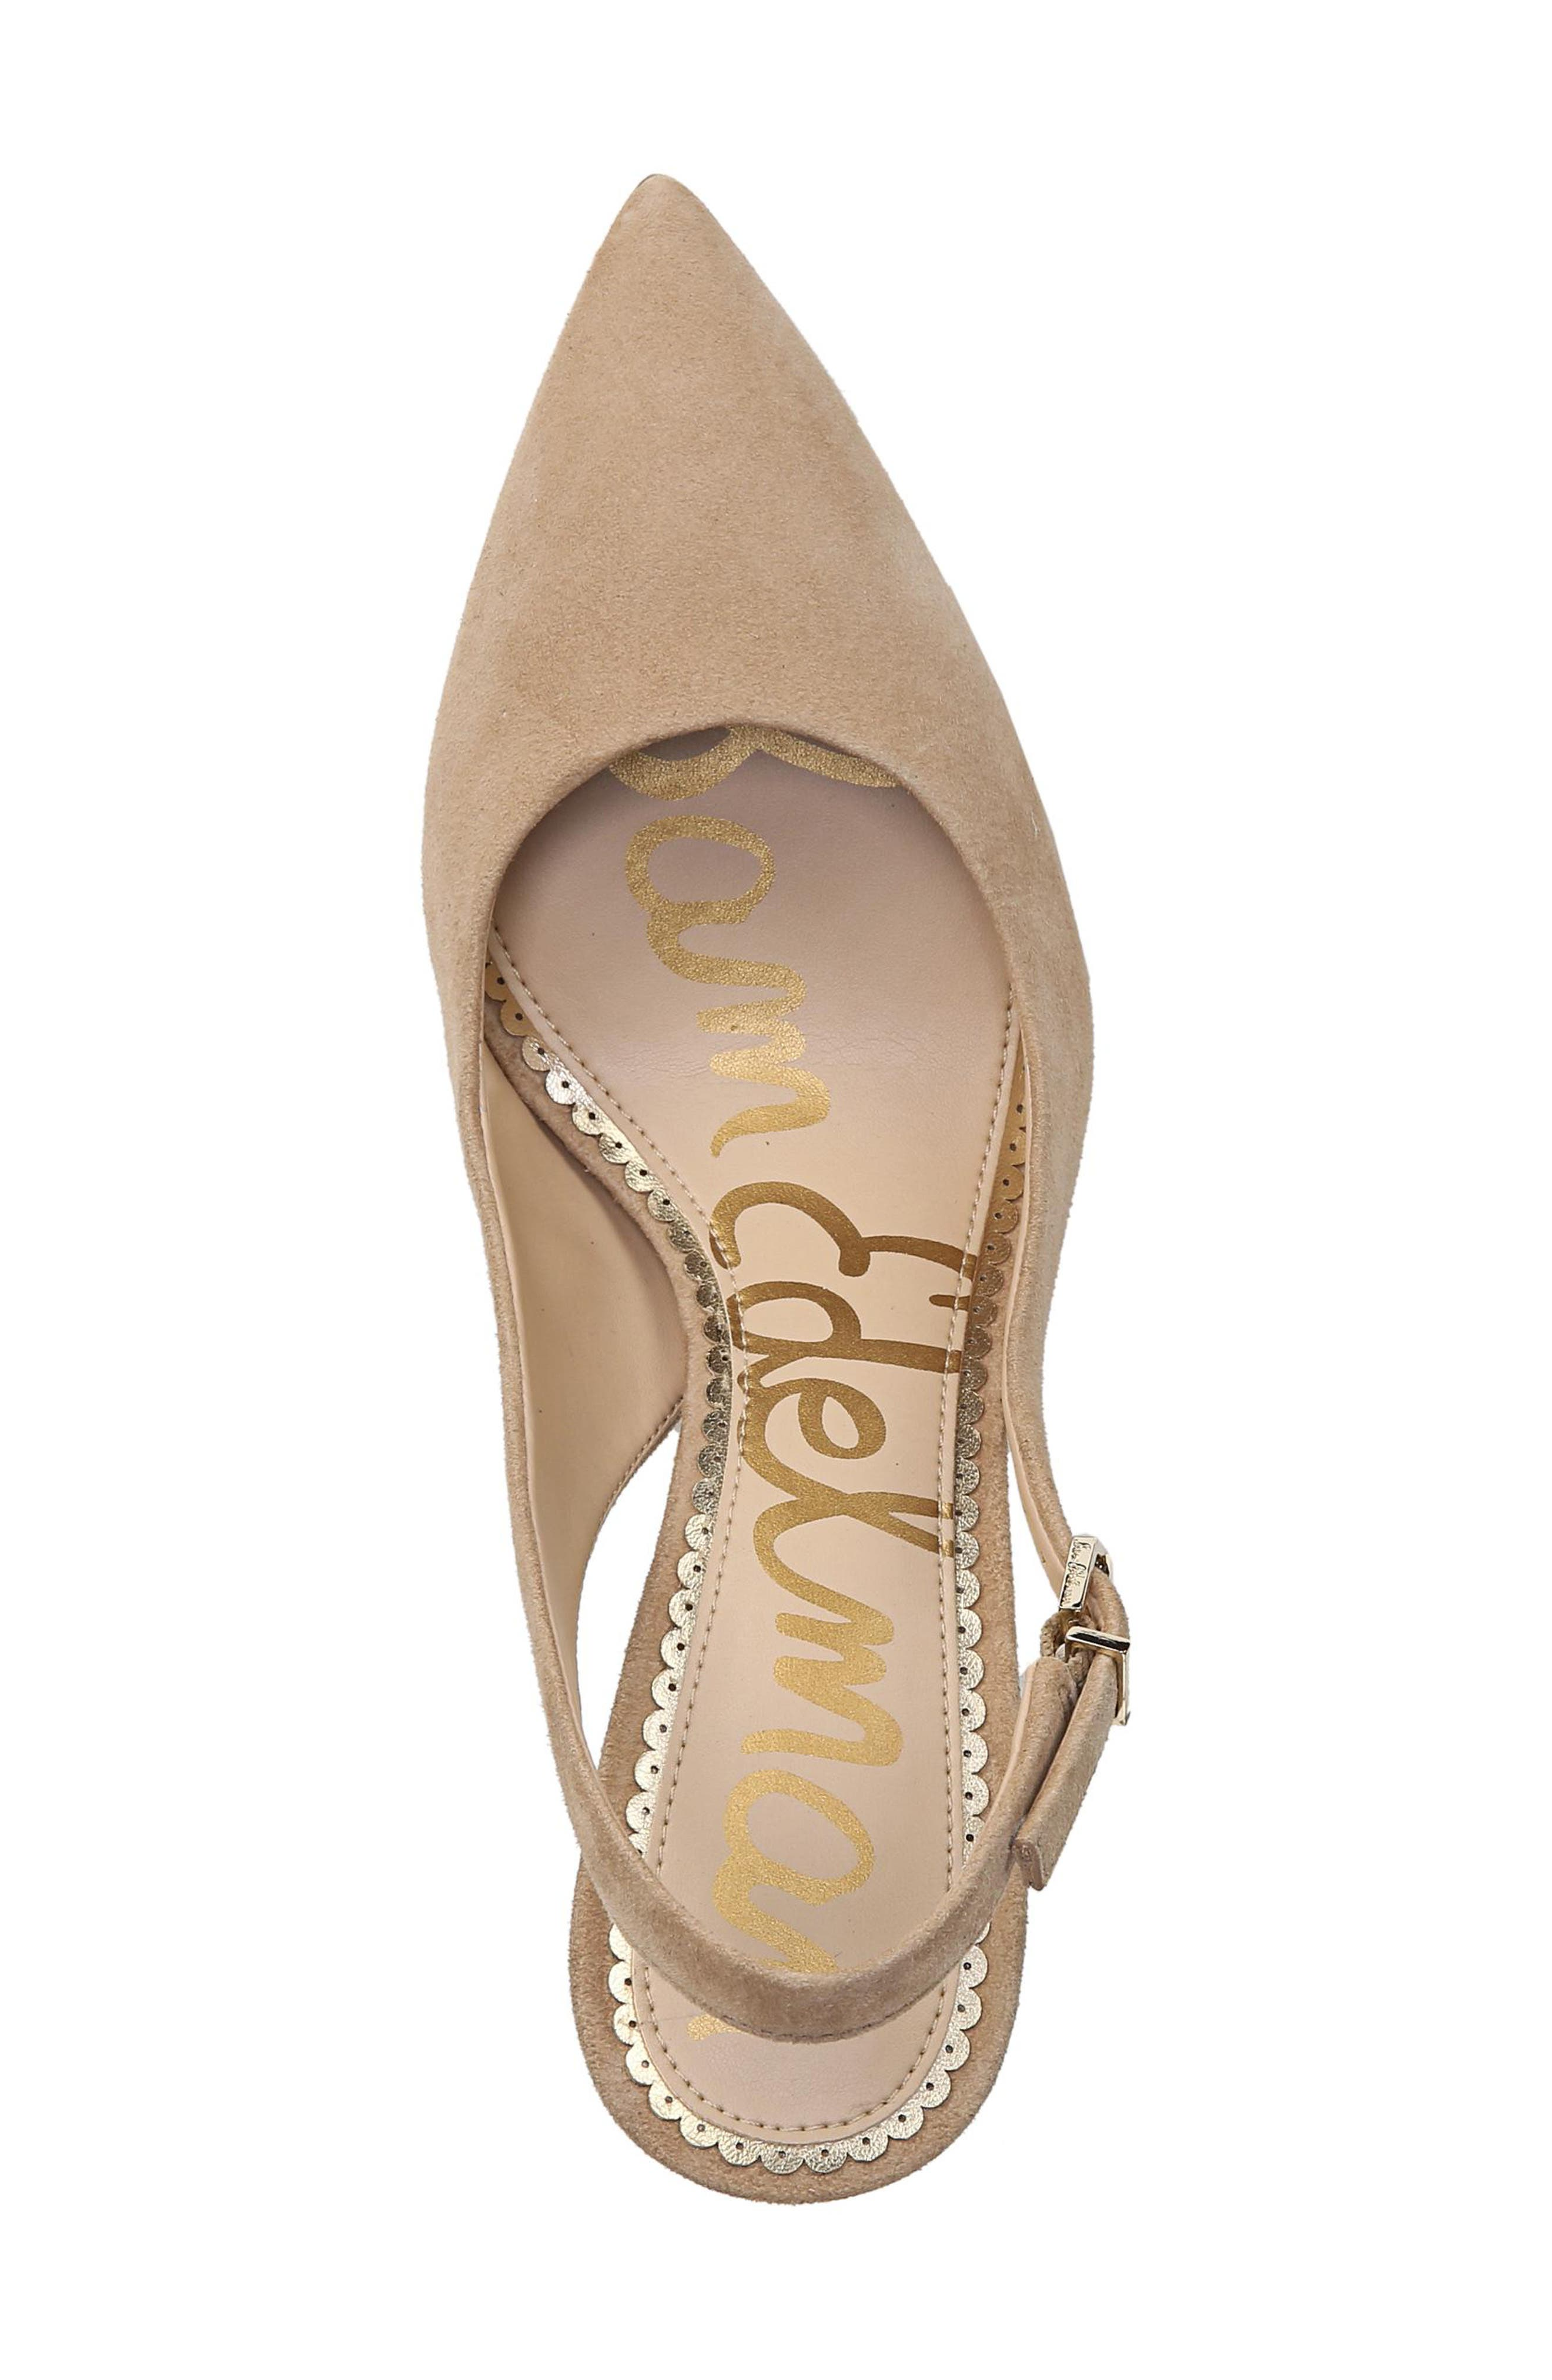 Hastings Slingback Pump,                             Alternate thumbnail 5, color,                             OATMEAL SUEDE LEATHER